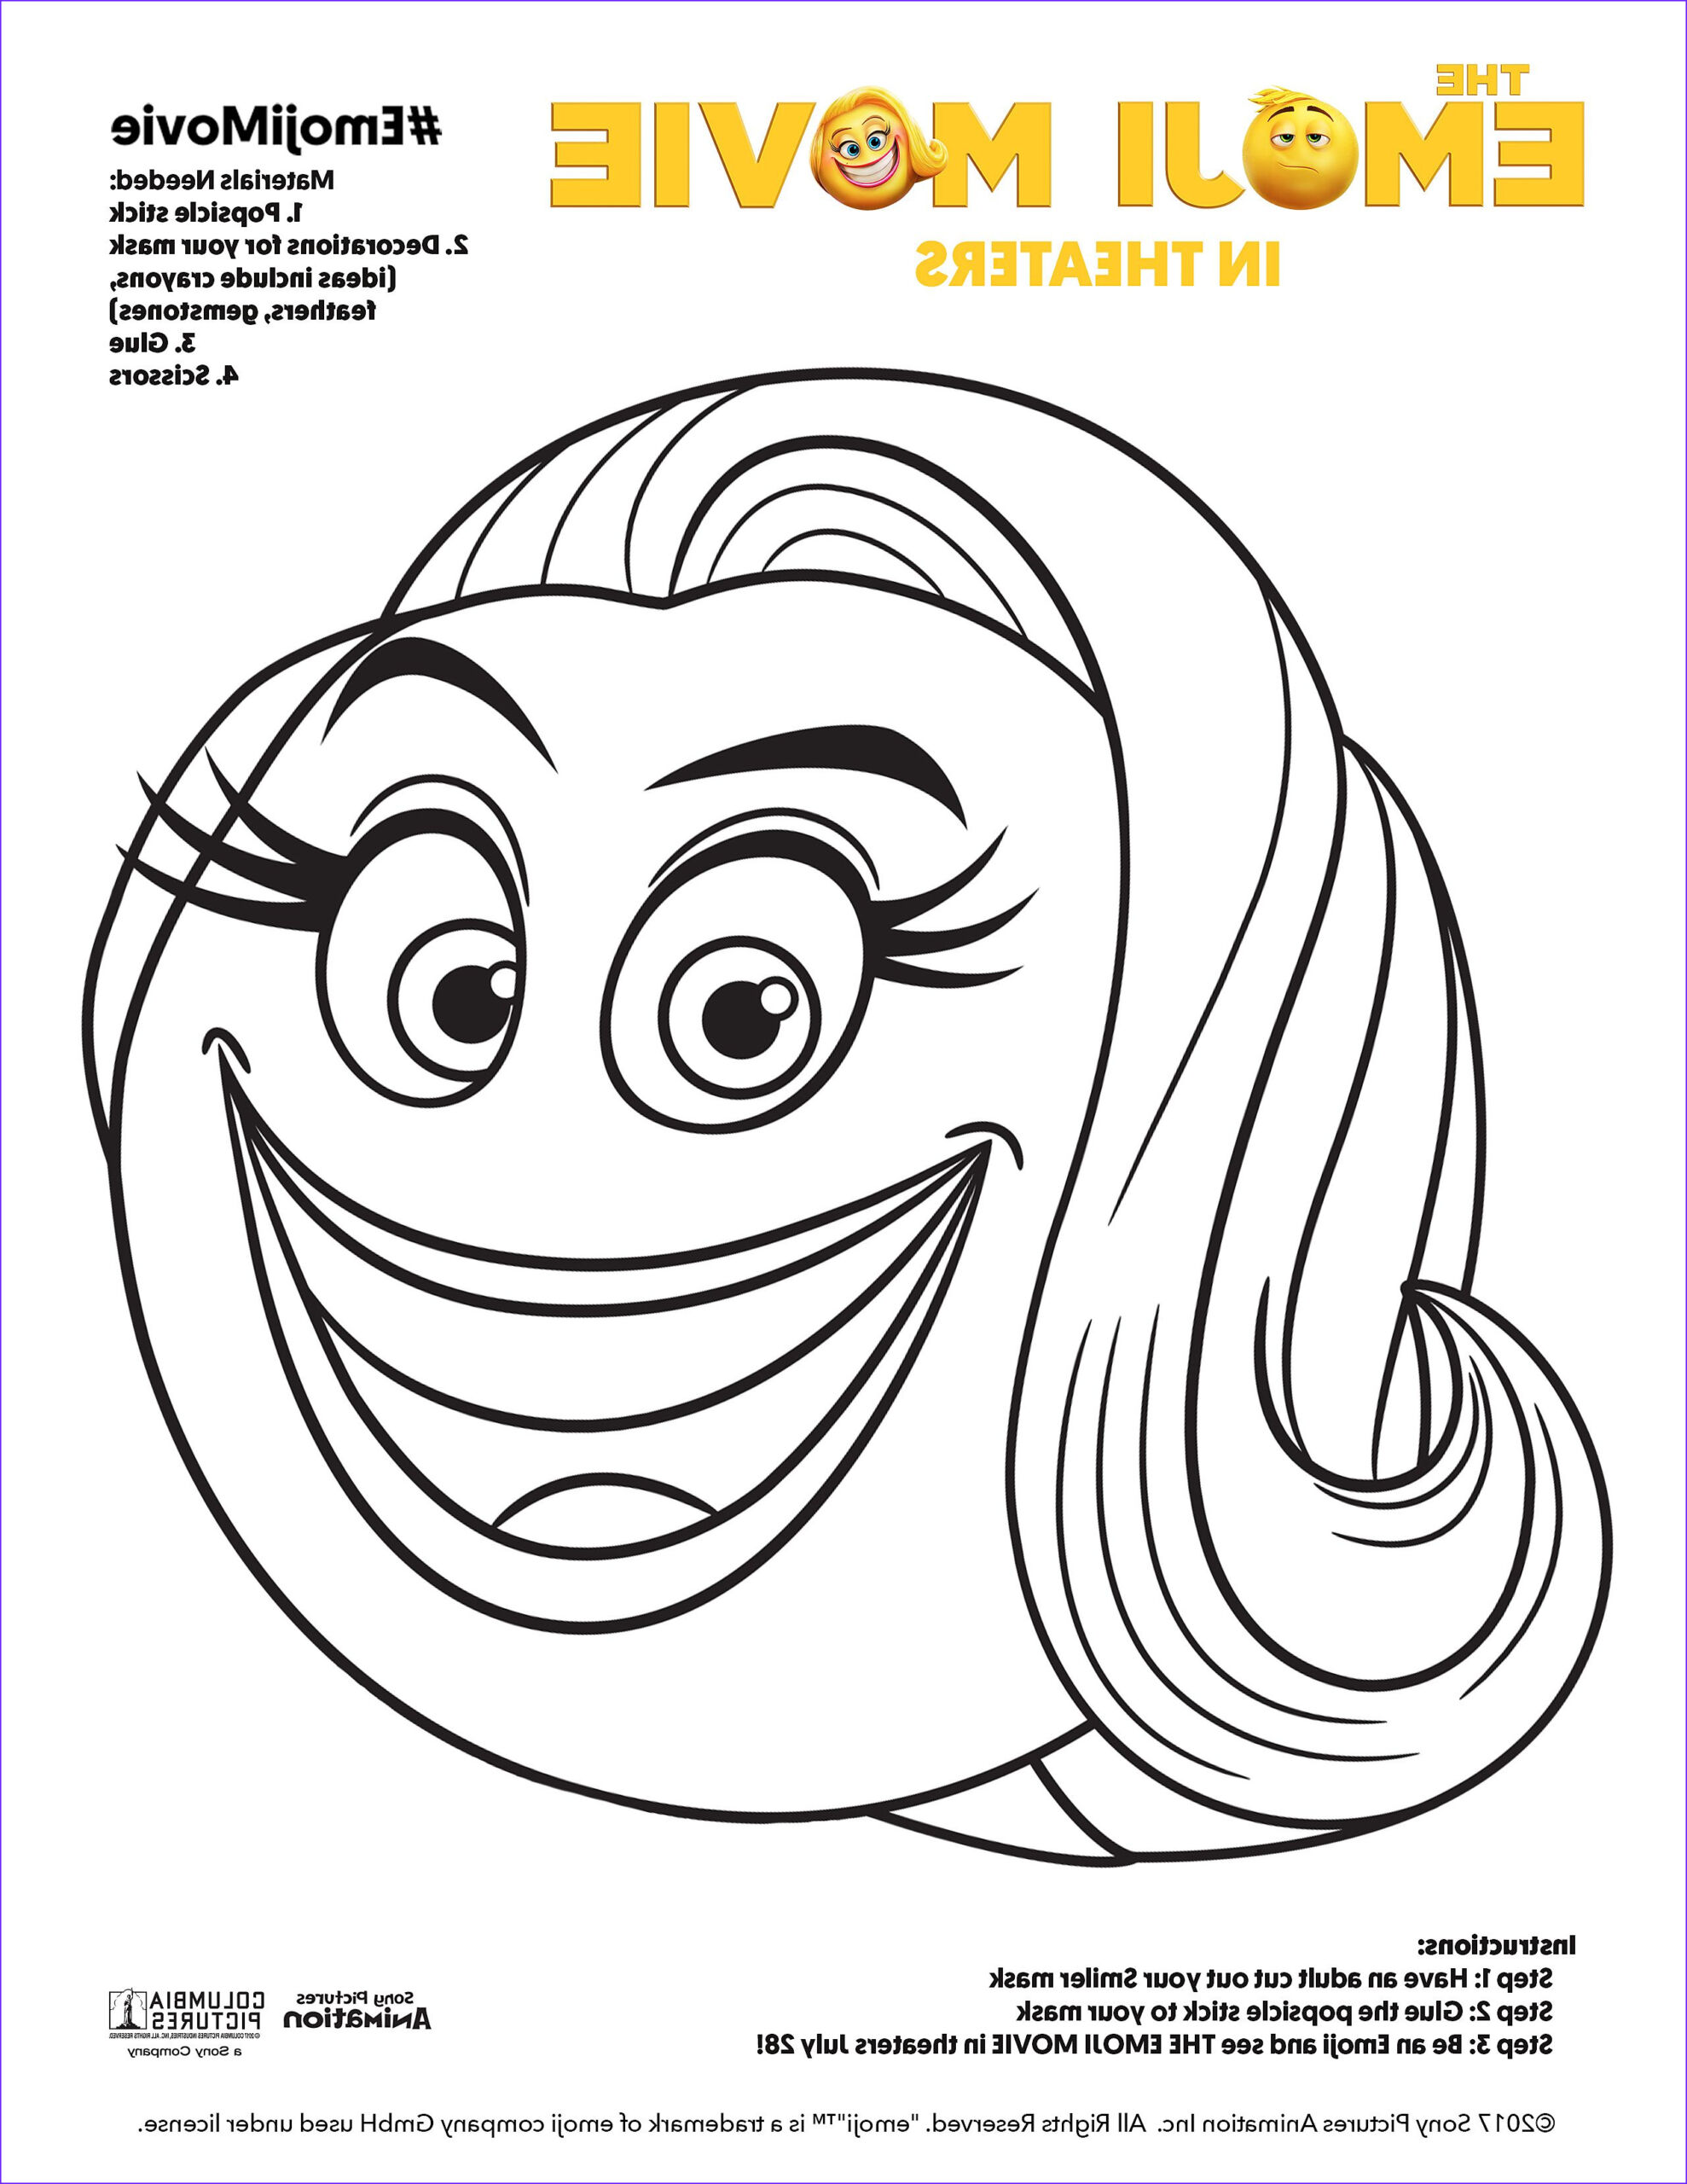 emoji movie fun going coloring pages